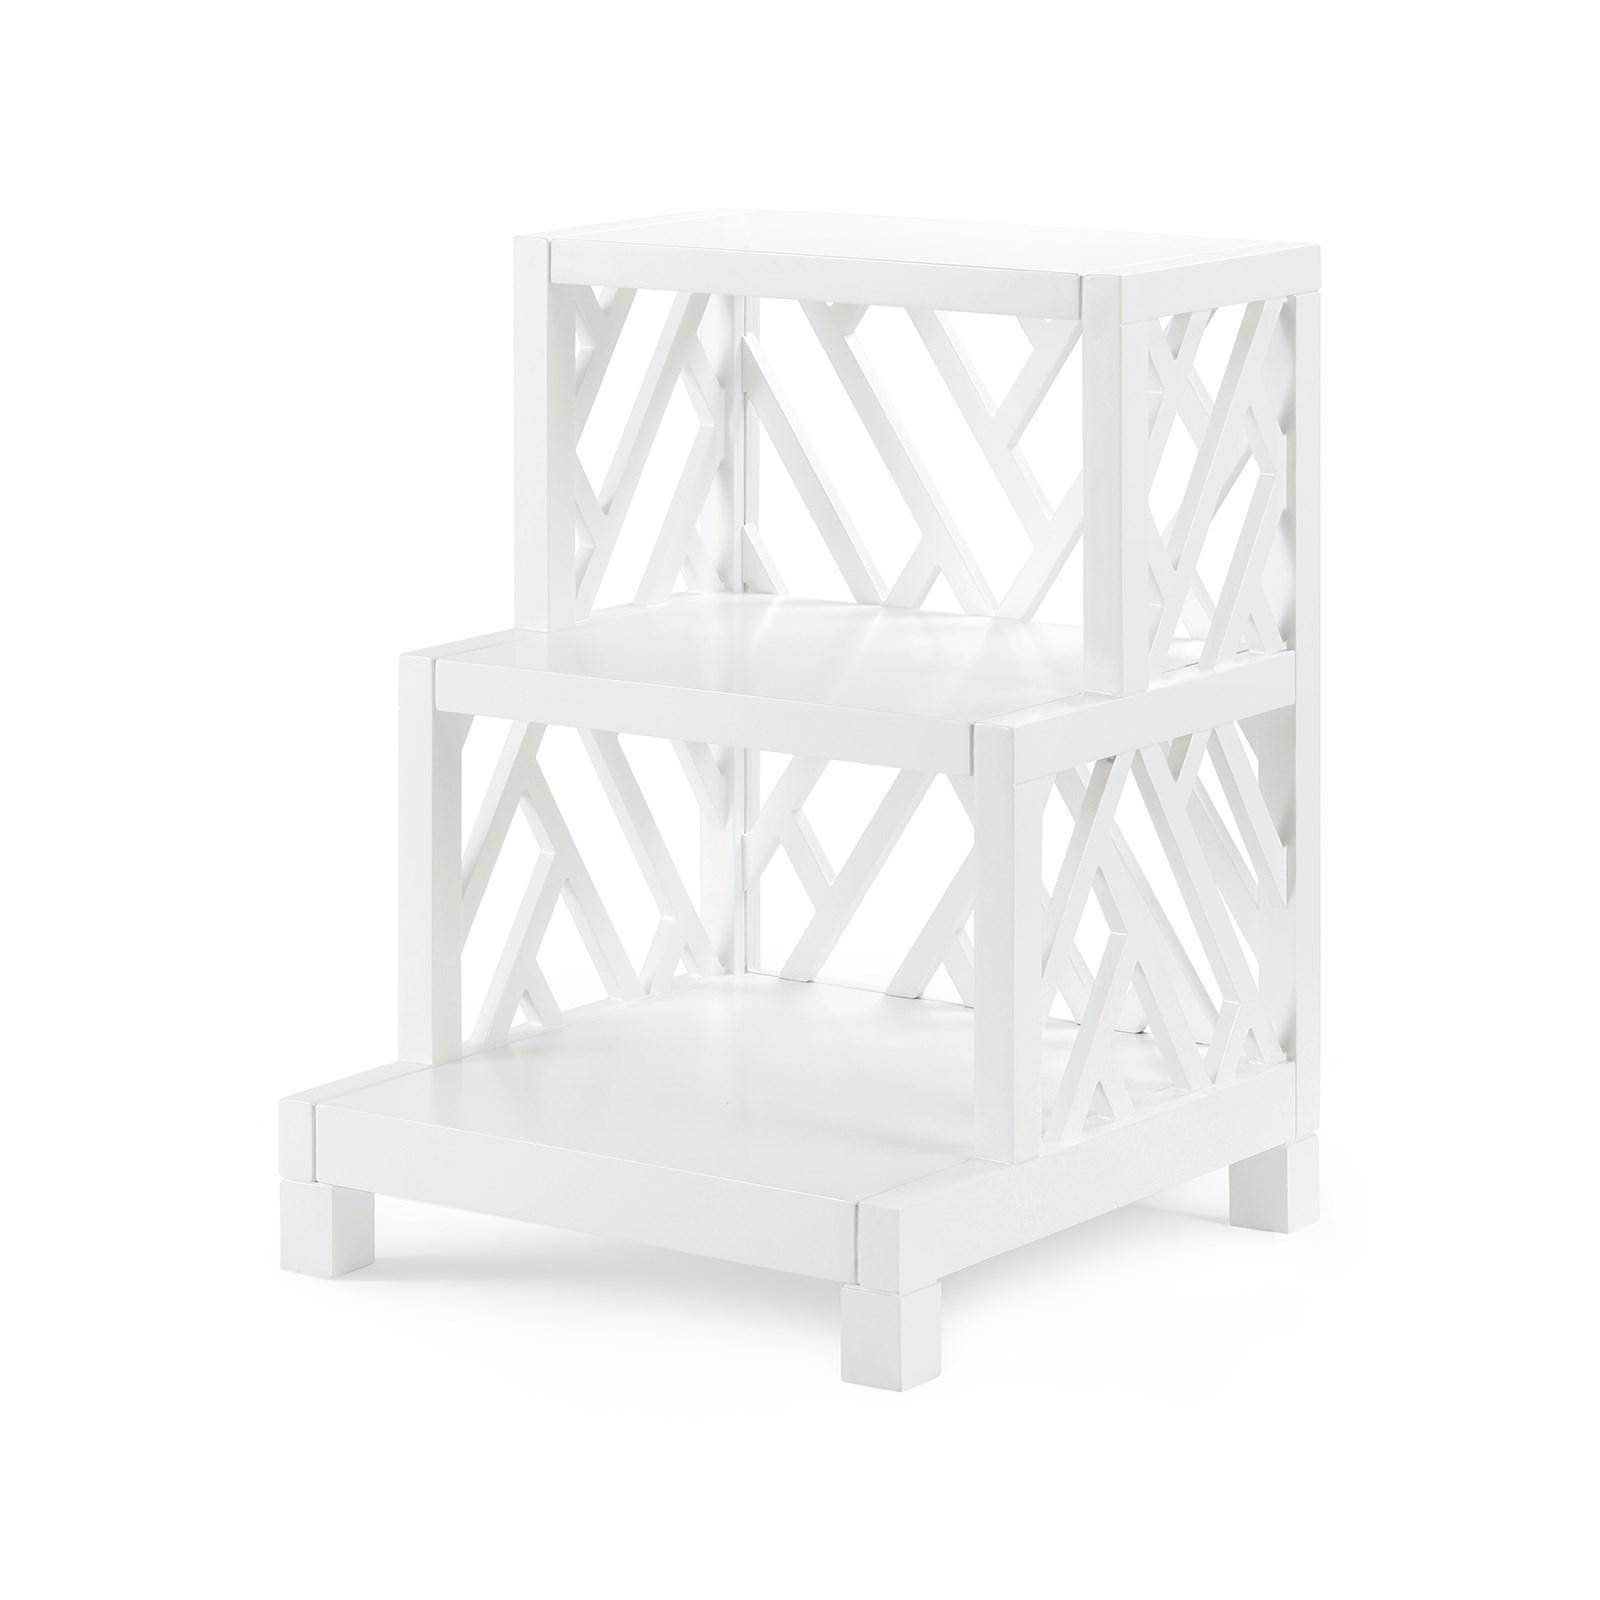 bungalow nantucket modern white lacquered wood fixed shelves lacquer accent table side reviews nan wilcox furniture set round coffee tables threshold yellow blue outdoor small